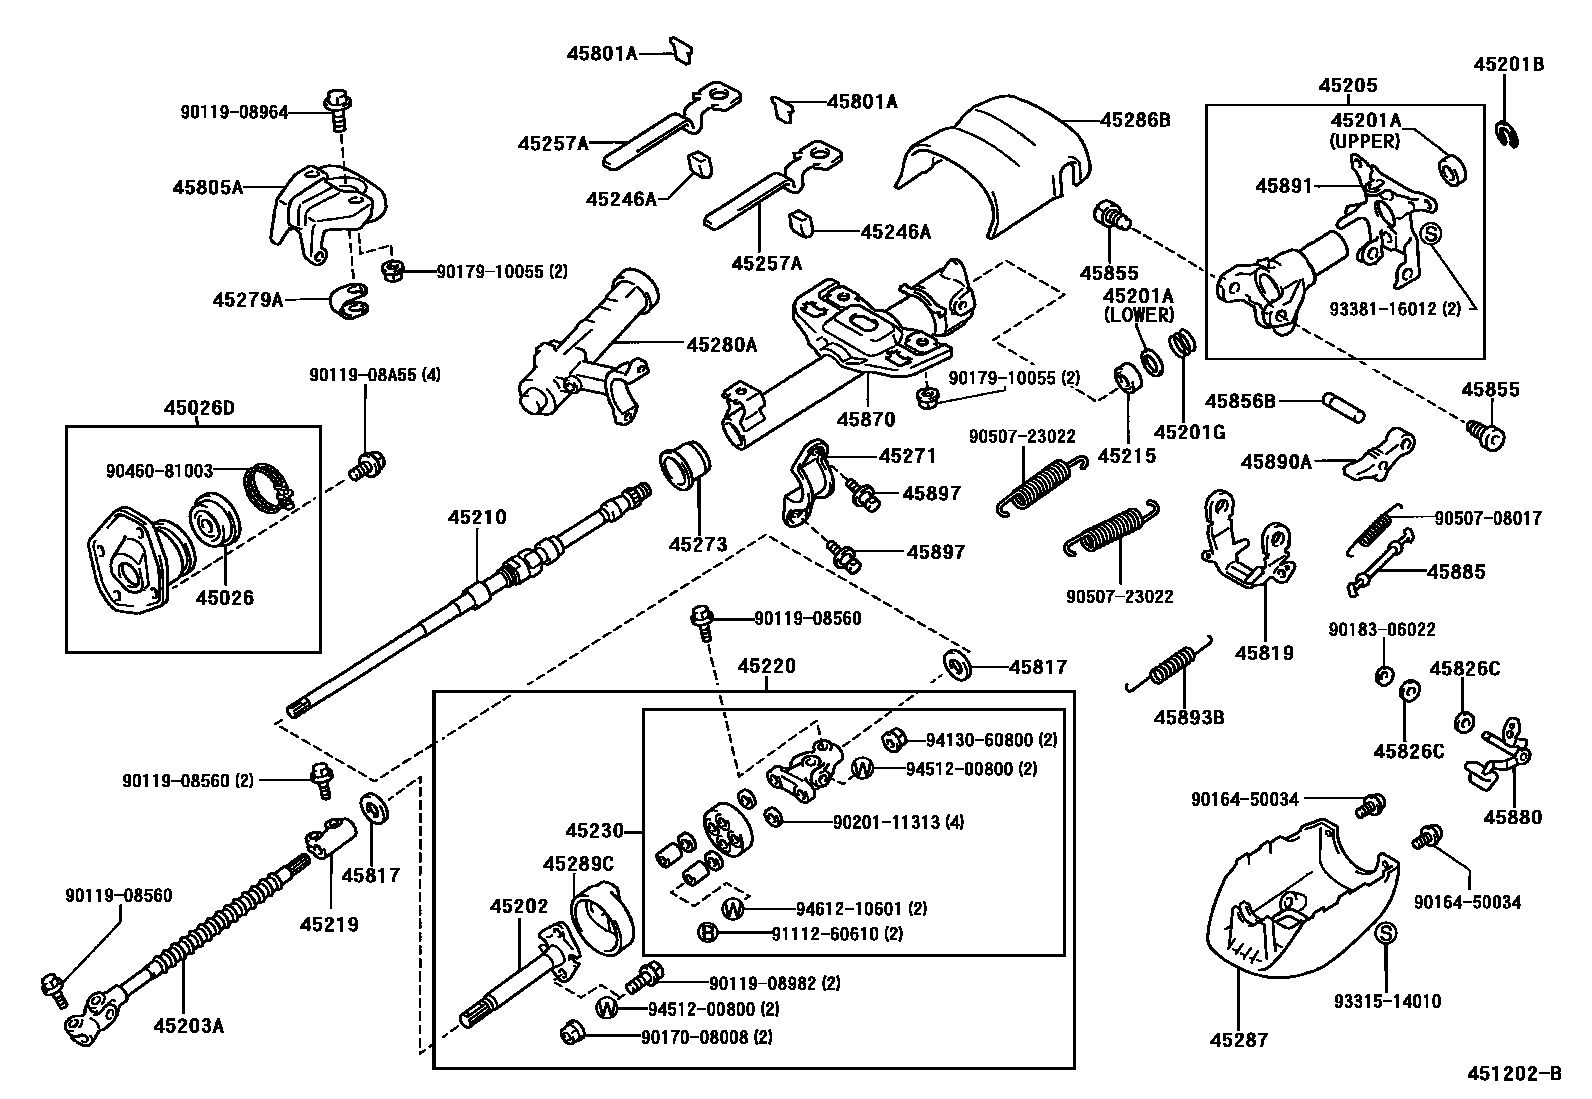 2000 Fuse Box Diagram 158442 also Radio T25 Fotos Rueckseite Anschluss Fuer Mute further Chevy Tilt Steering Column Diagram in addition 245823 Drivers Door Close Assist Feature Not Working 4 likewise WiringDiagrams. on kenworth wiring diagram